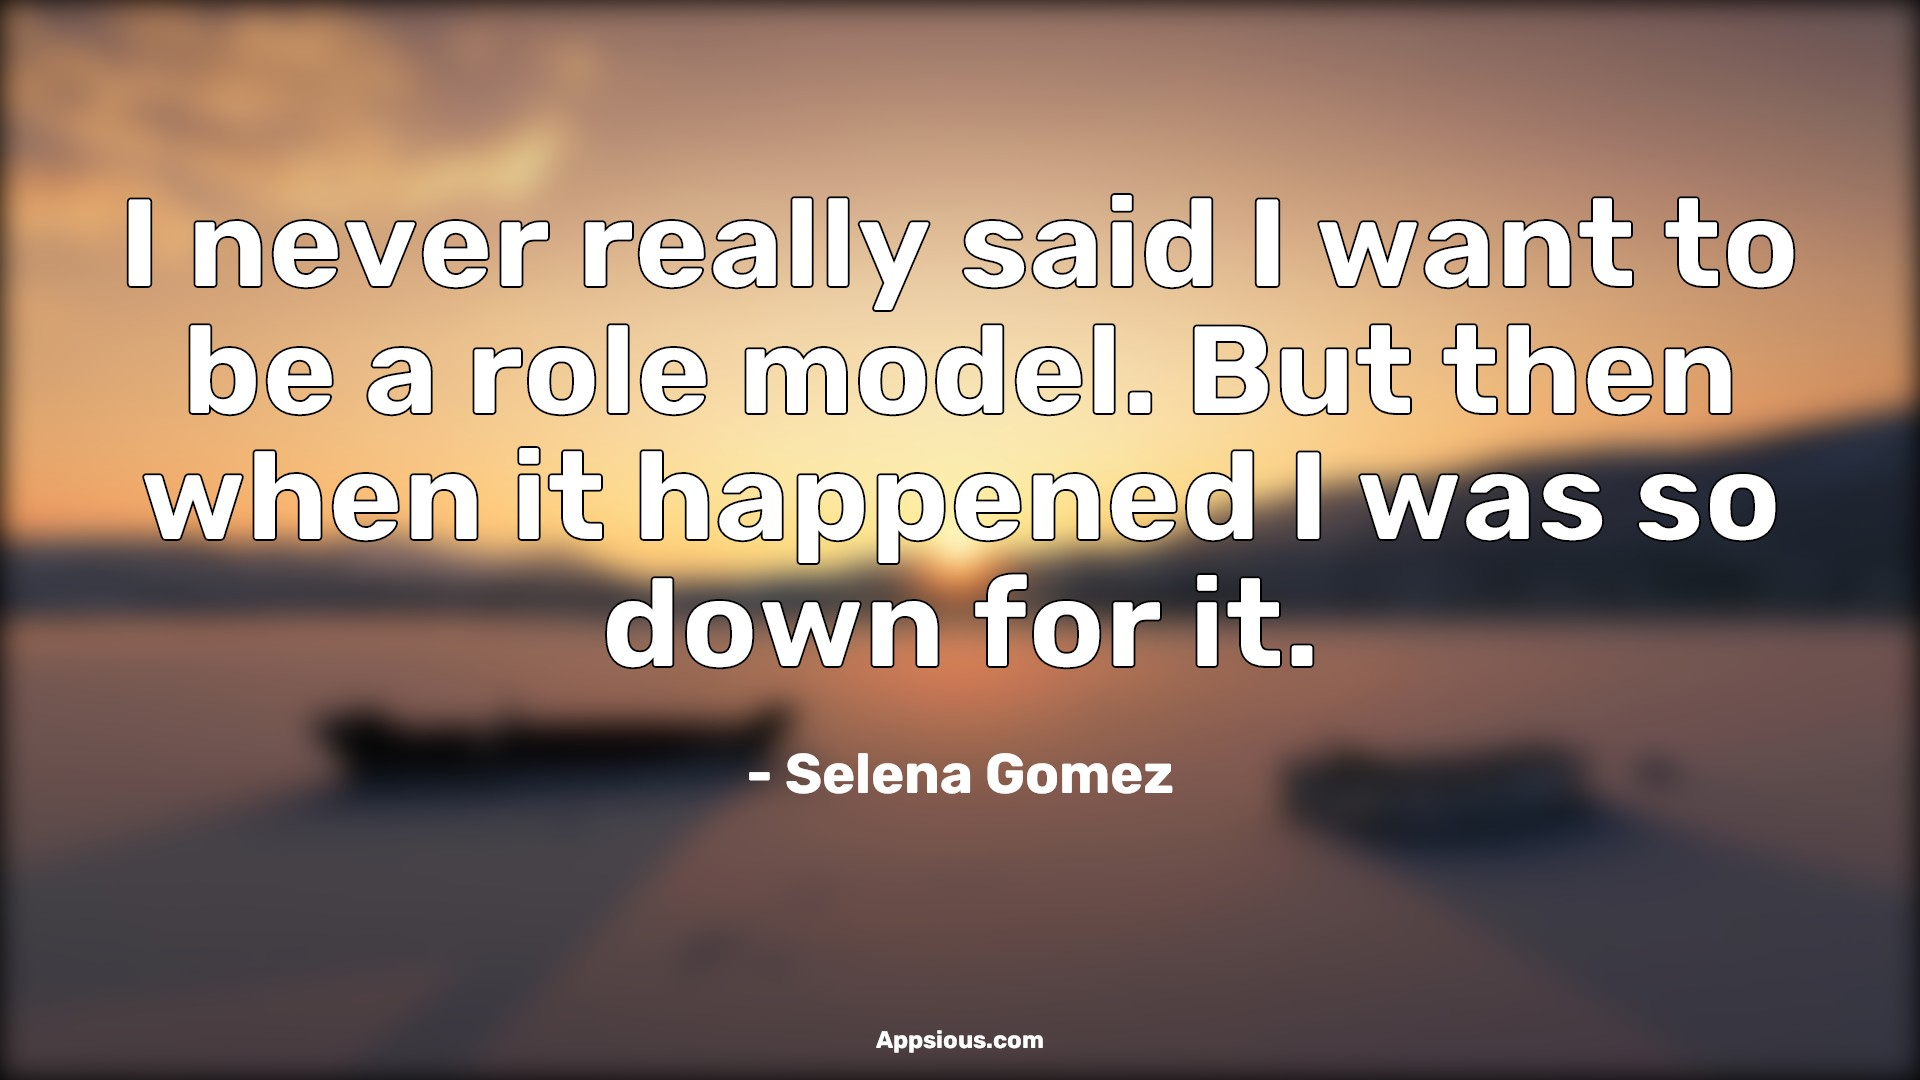 I never really said I want to be a role model. But then when it happened I was so down for it.